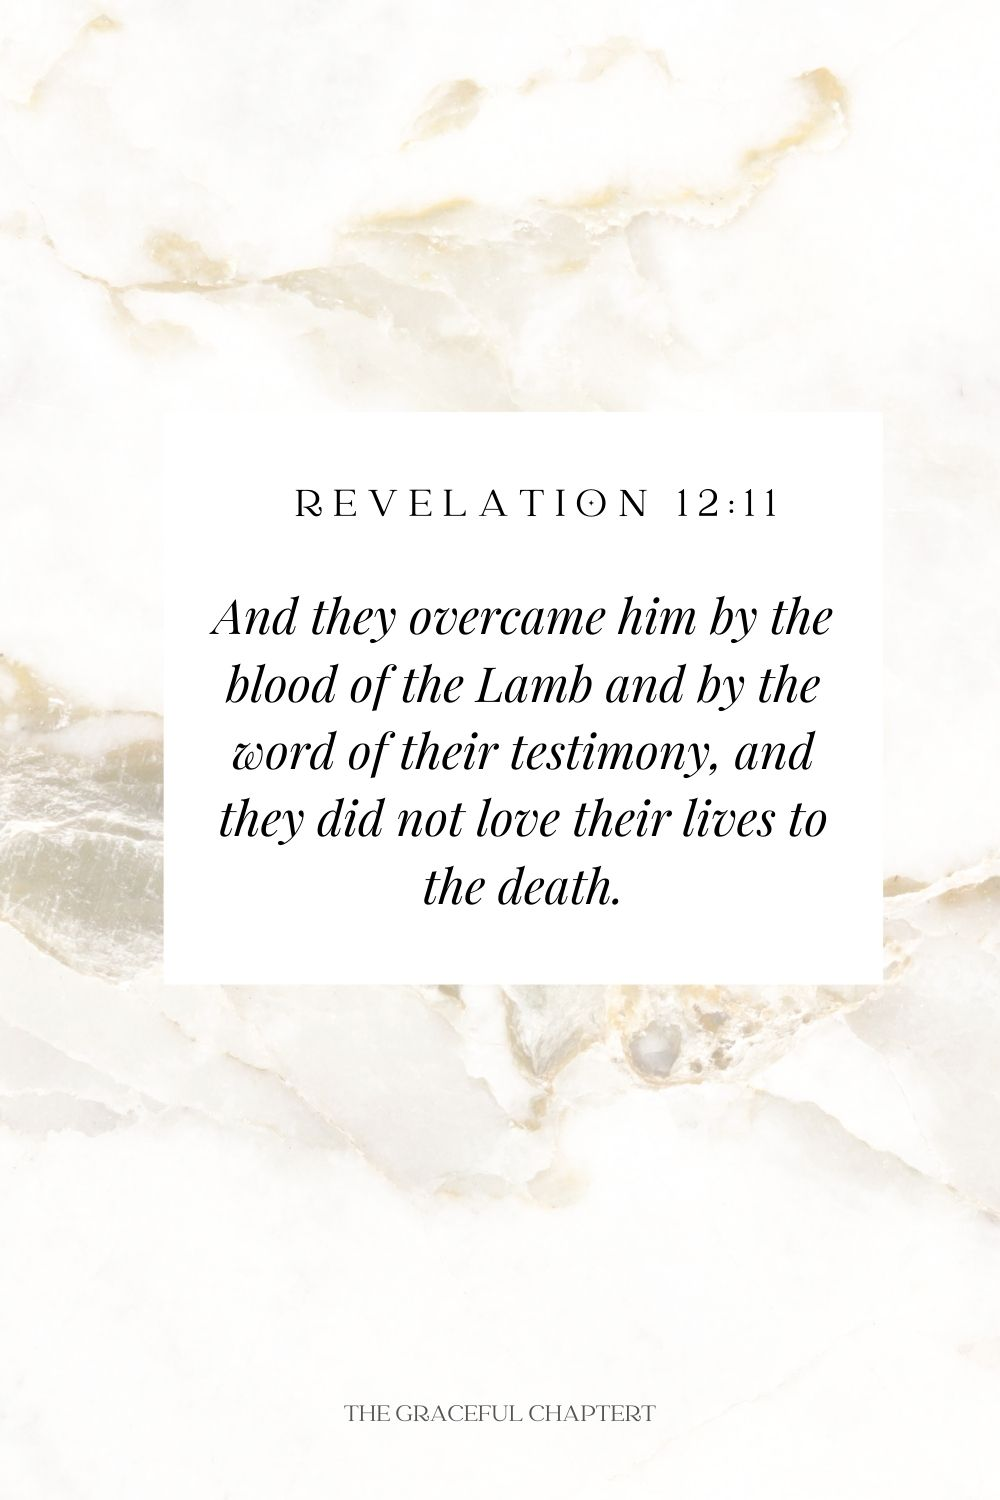 And they overcame him by the blood of the Lamb and by the word of their testimony, and they did not love their lives to the death. Revelation 12:11